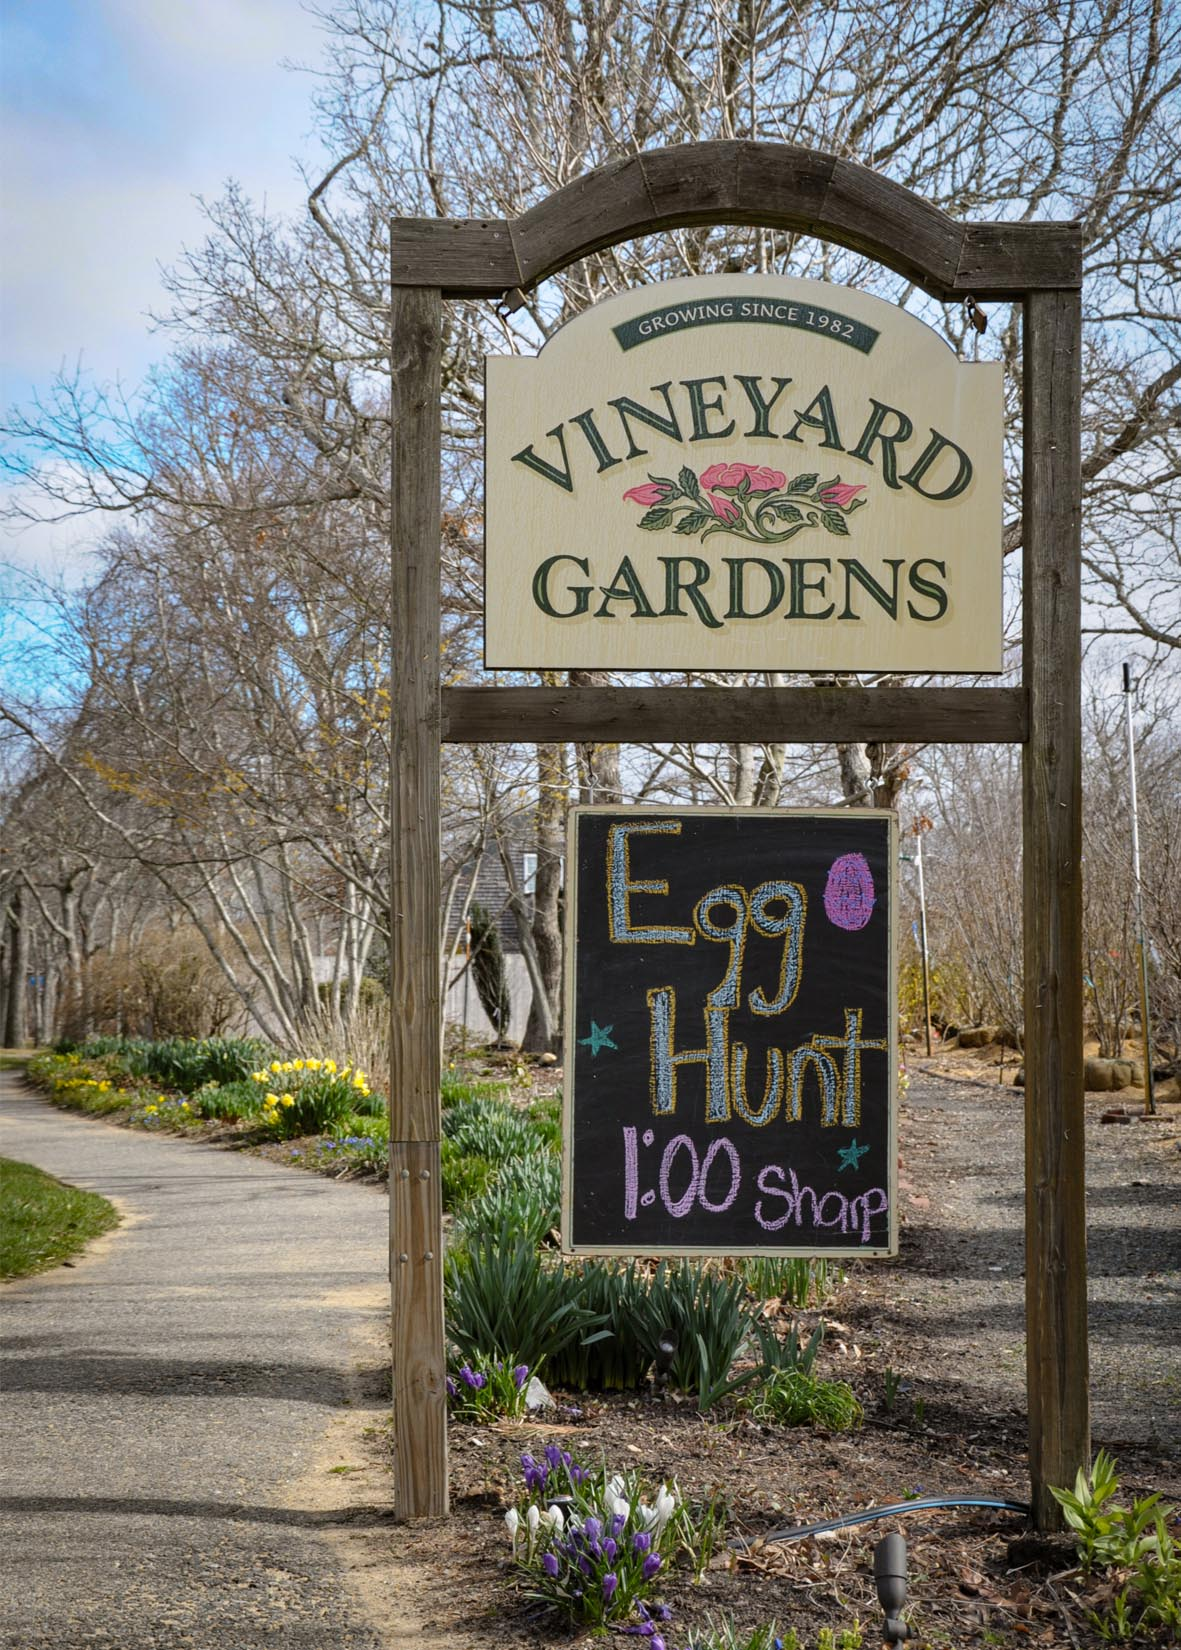 Vineyard Gardens Easter Egg Hunt